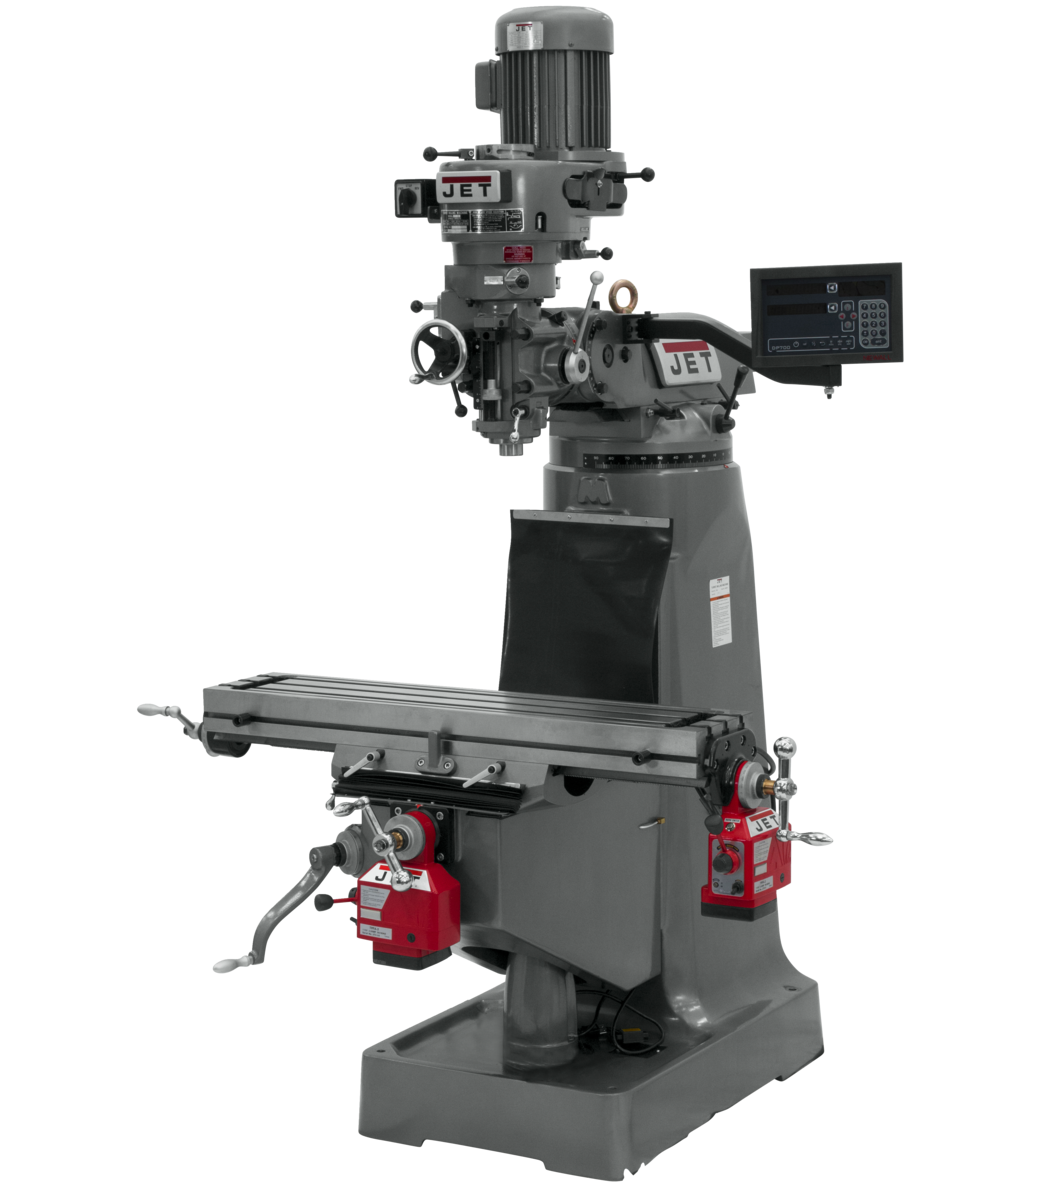 JTM-1 Mill With 3-Axis Newall DP700 DRO (Quill) With X and Y-Axis Powerfeeds